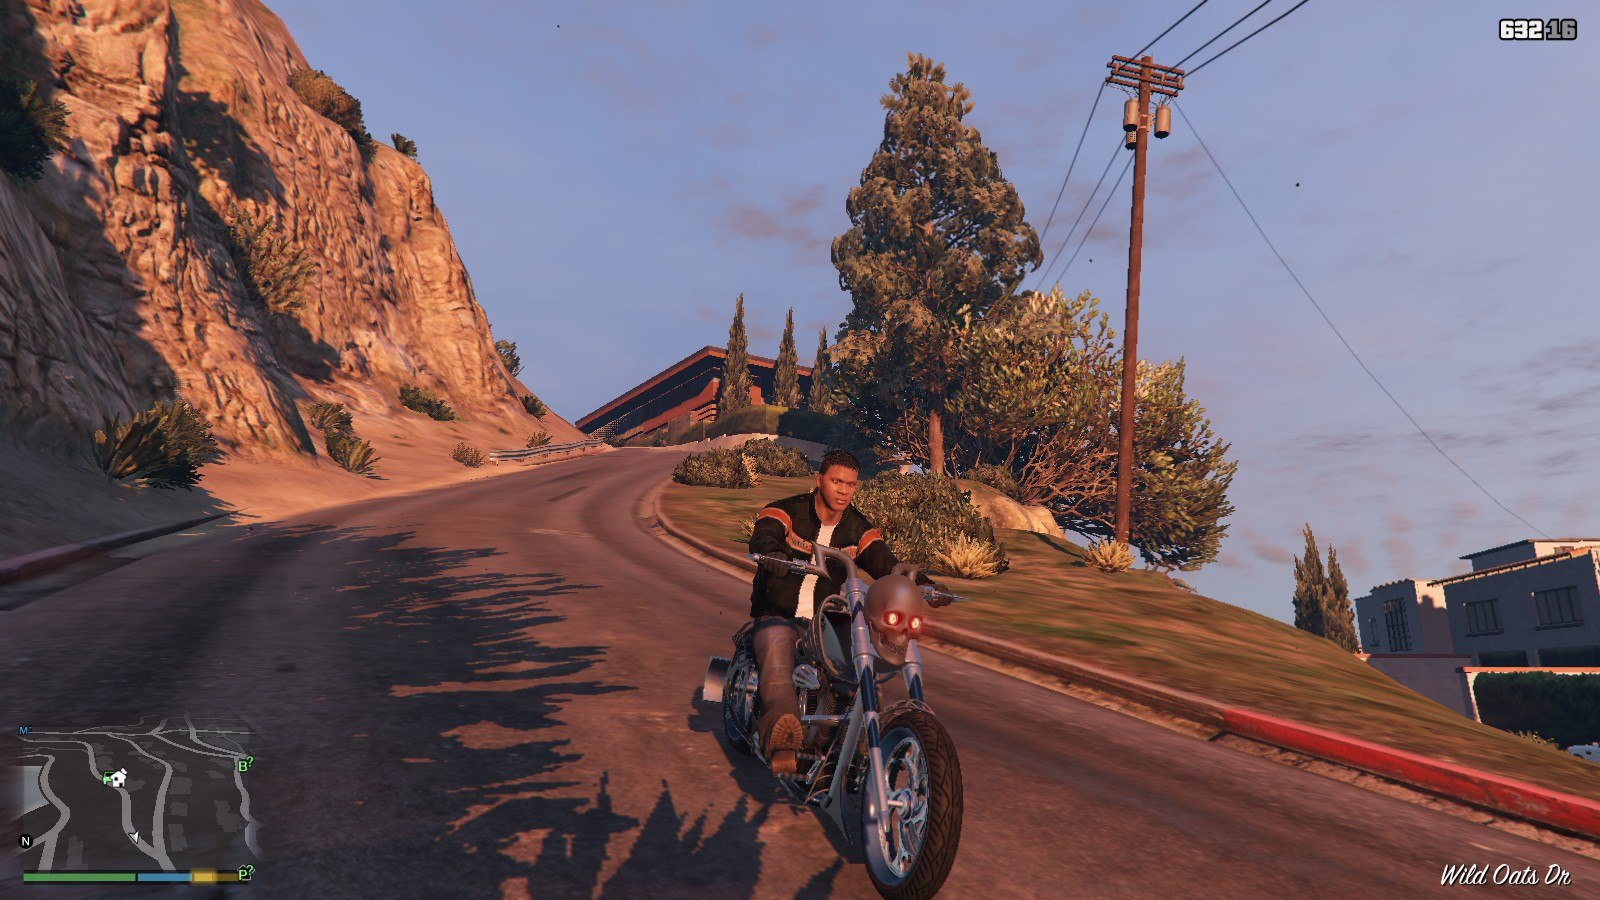 Harley Davidson Motocycle Leather Jacket GTA5 Mods (6)